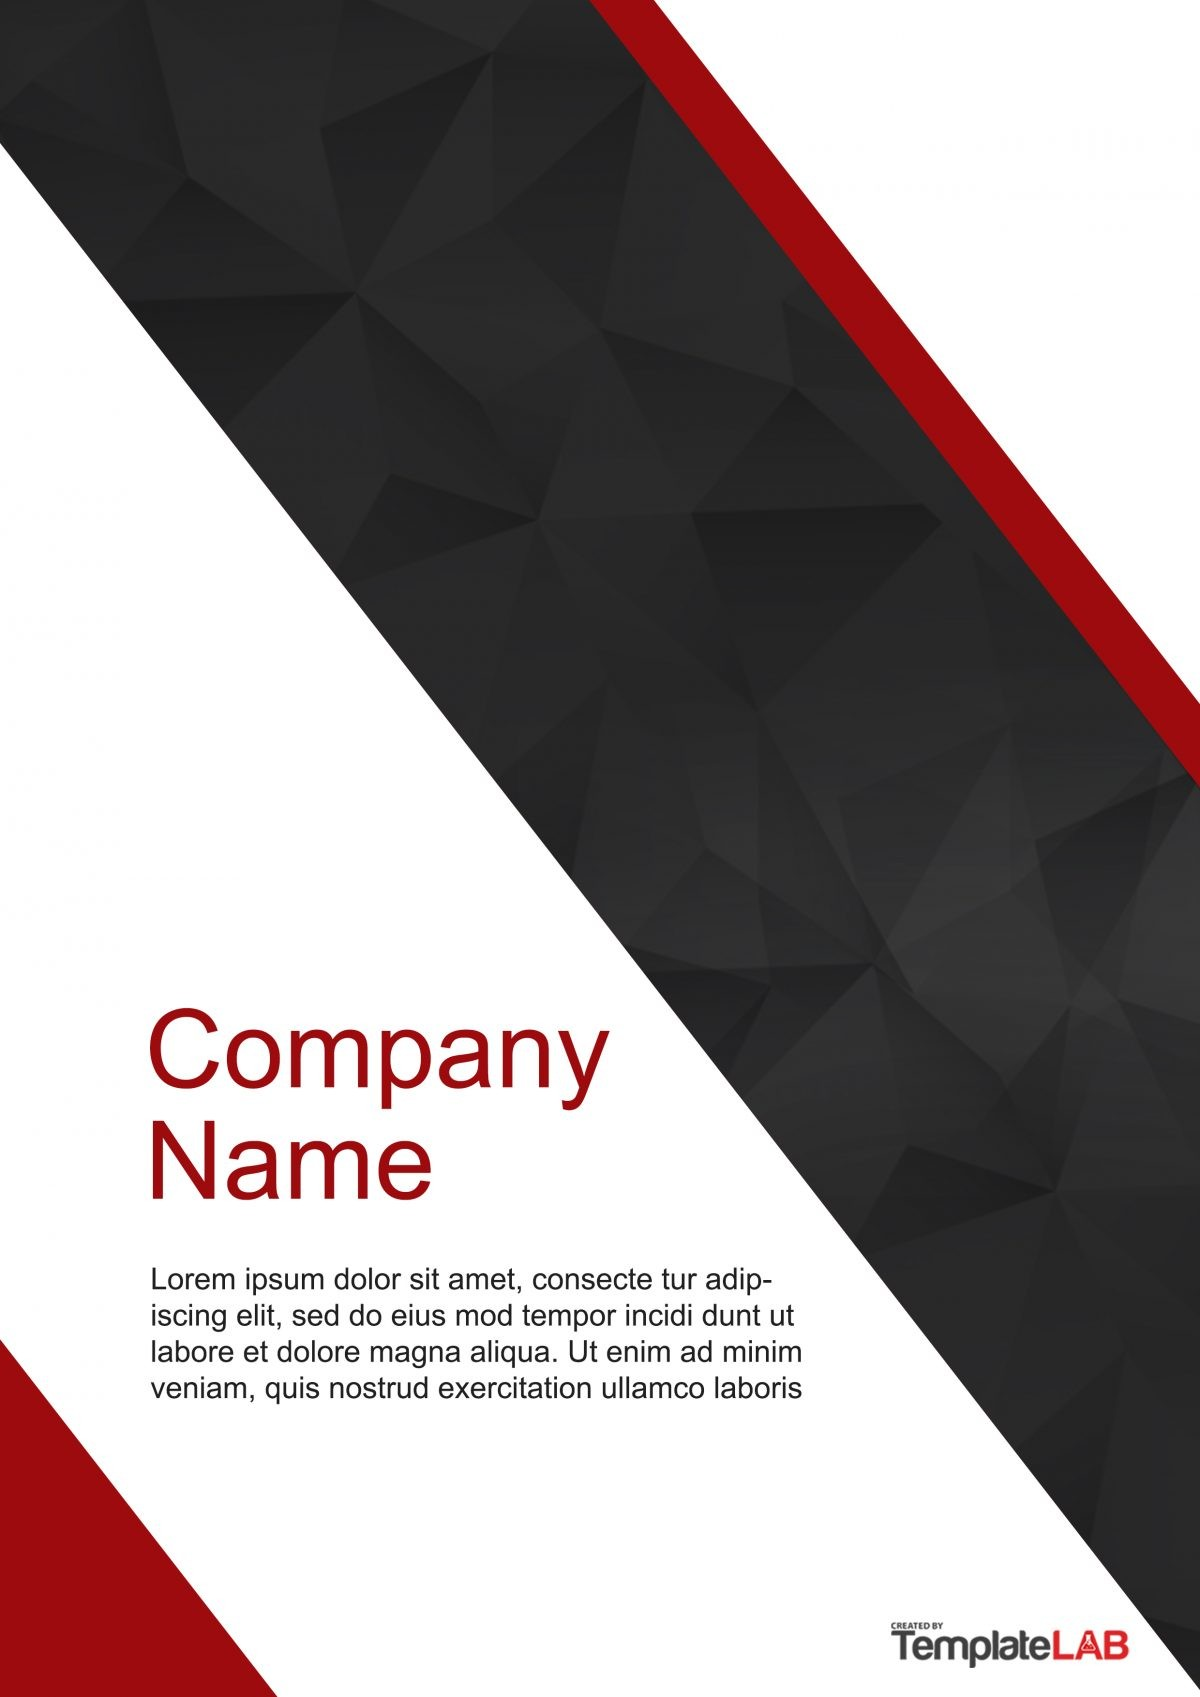 39 Amazing Cover Page Templates Word Psd ᐅ Template Lab